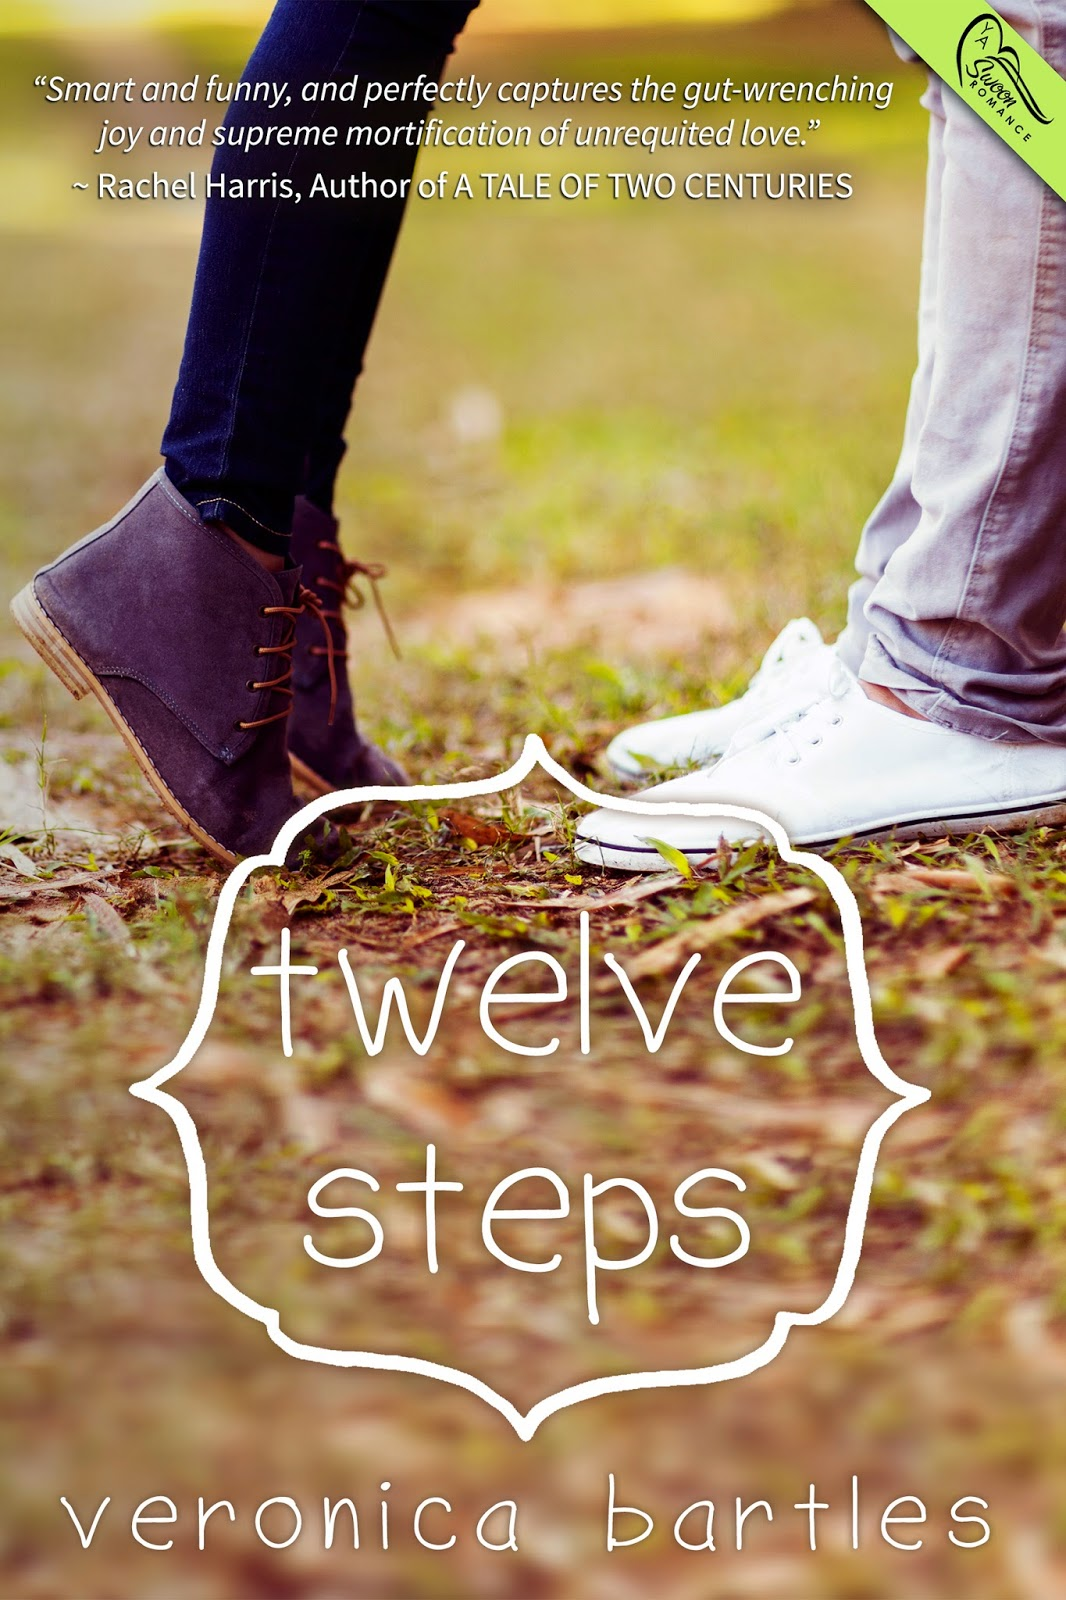 Goodreads: Twelve Steps